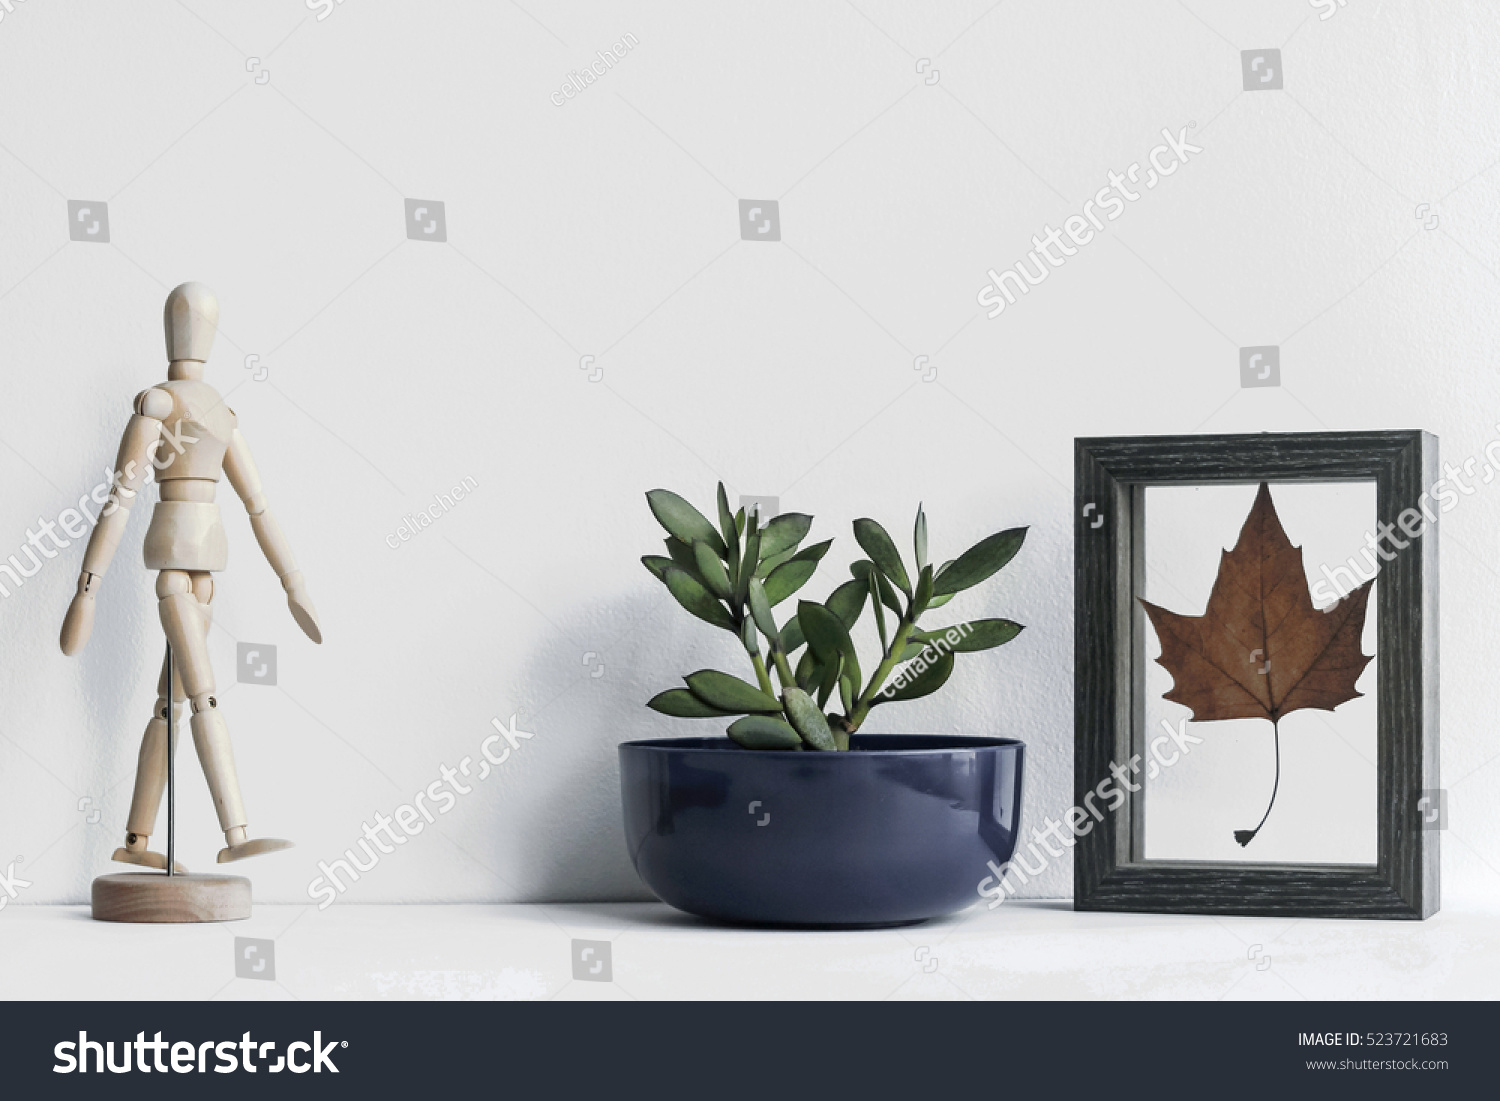 plants and decorations on white table